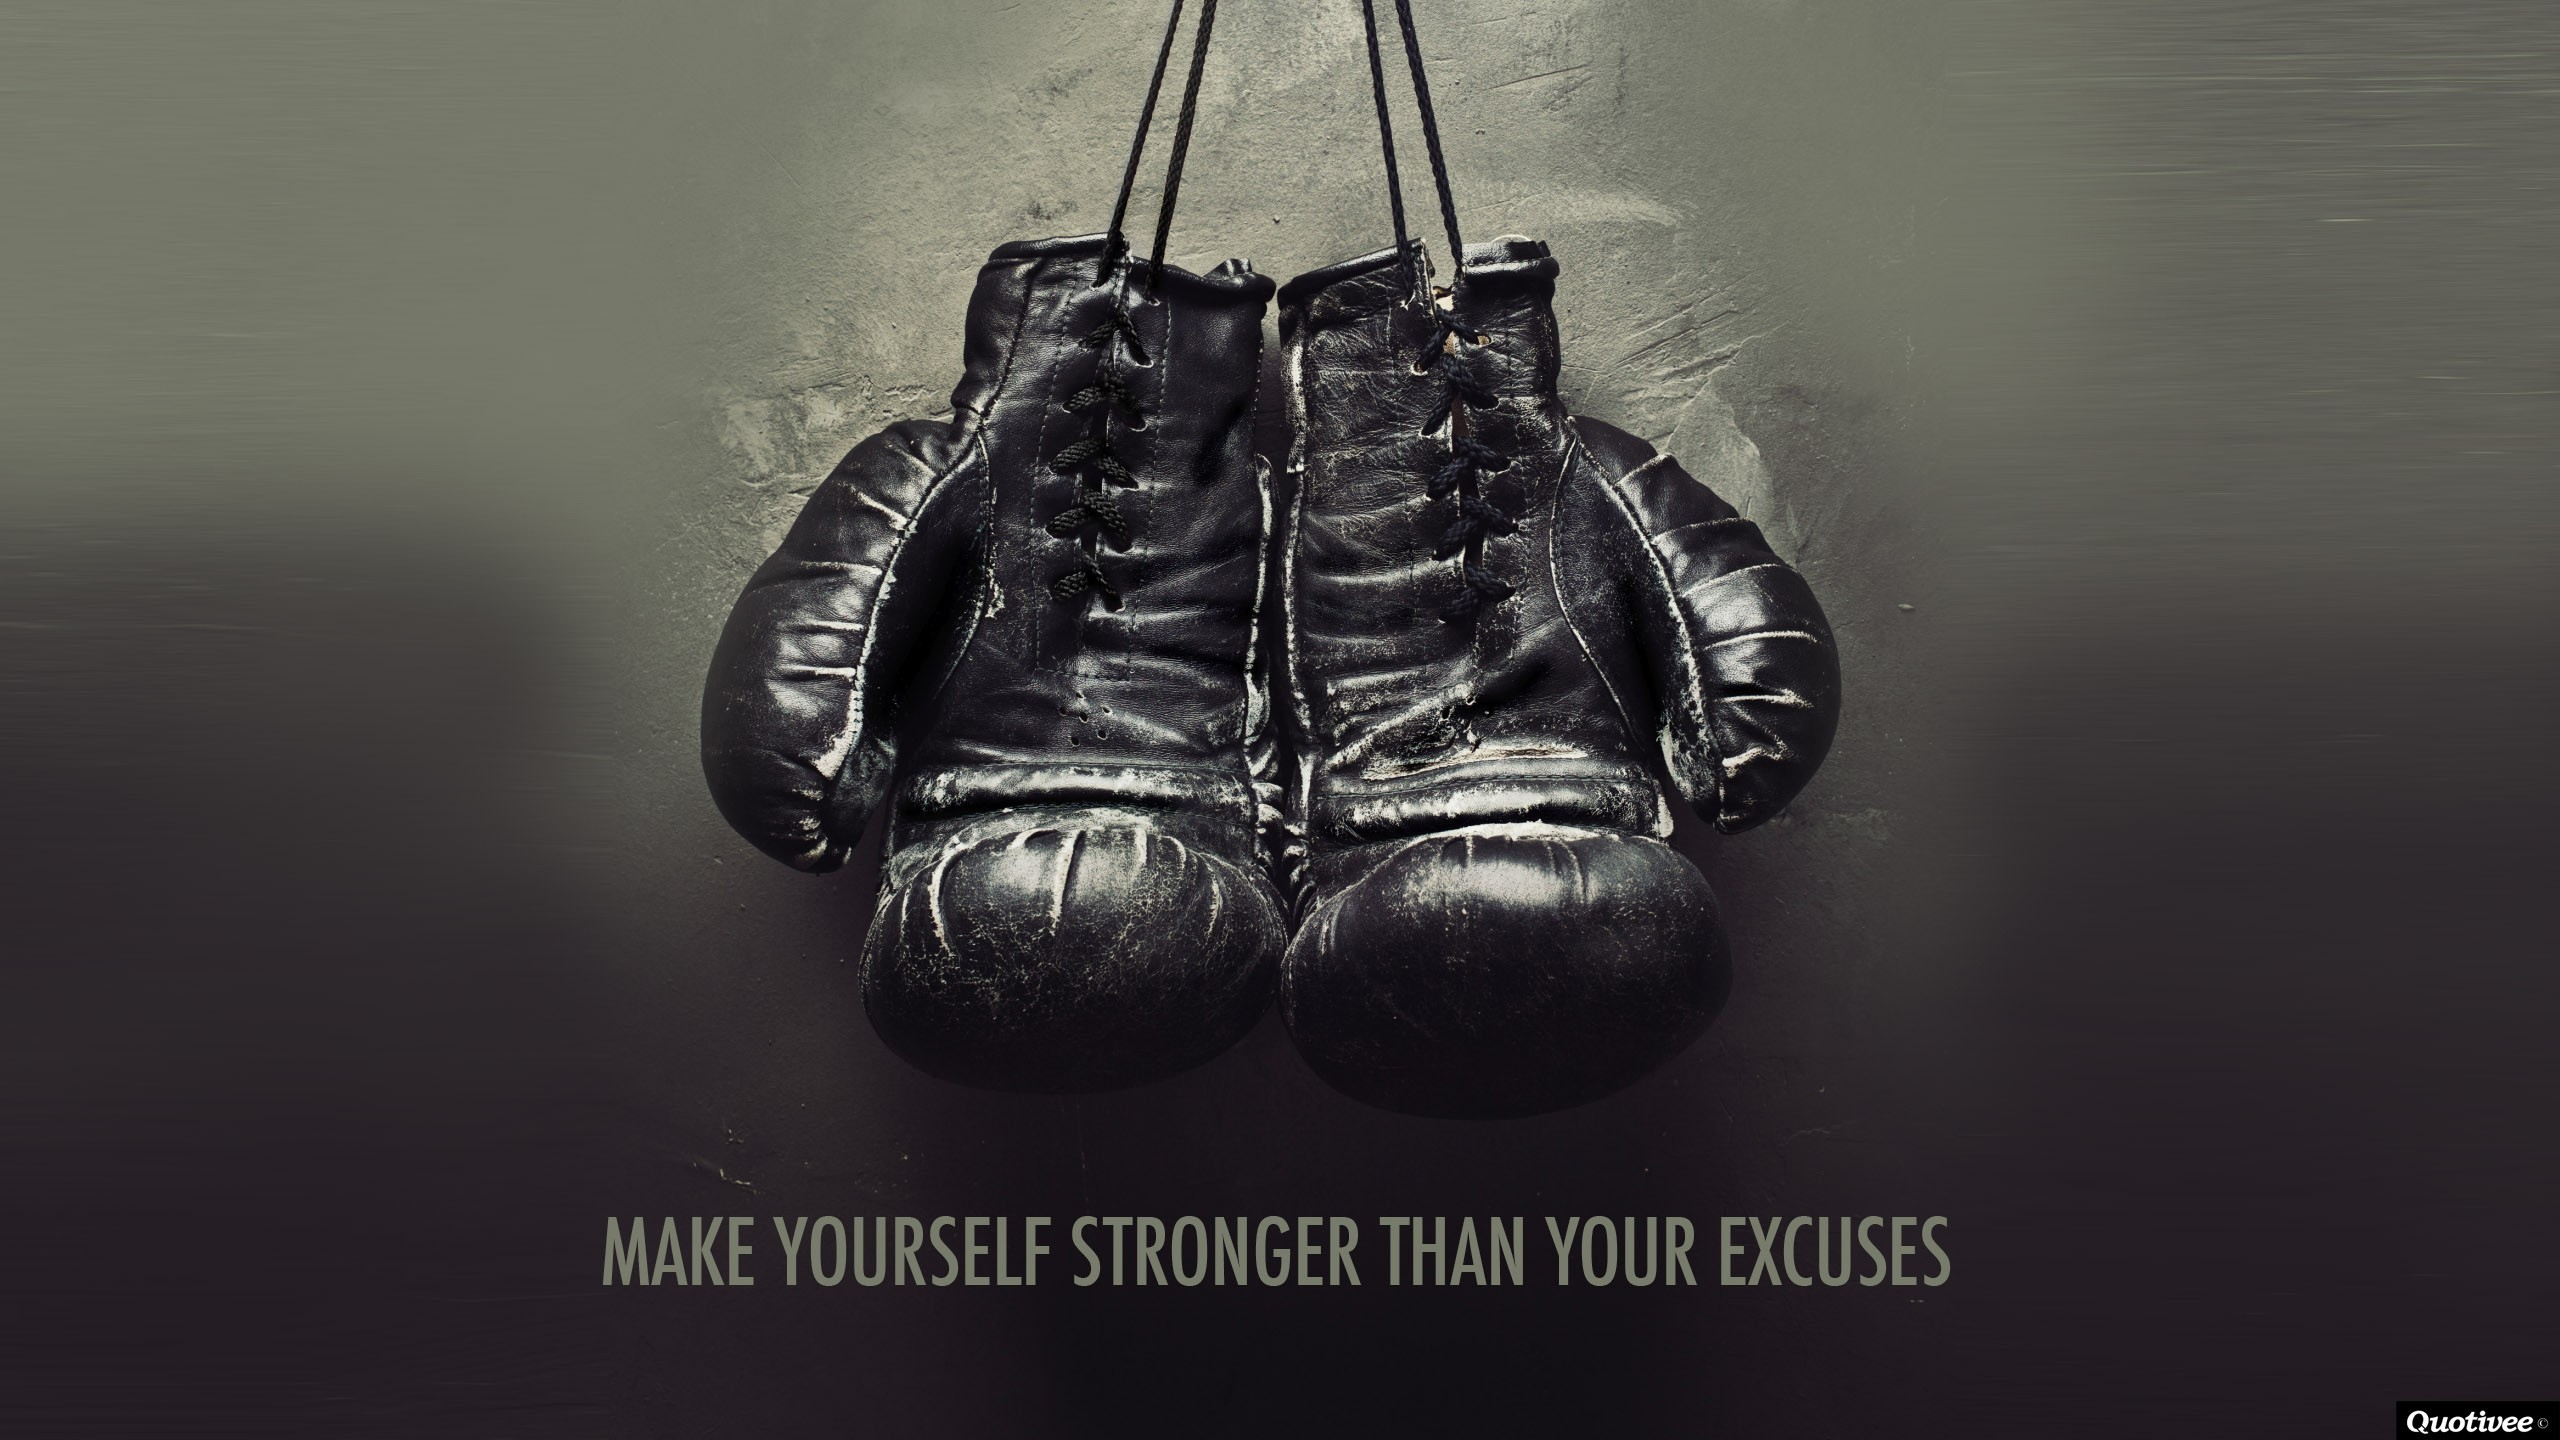 Res: 2560x1440, HD Boxing Wallpaper HD Resolution – Wallpapershds Boxing Gloves Wallpaper  (46 images) ...